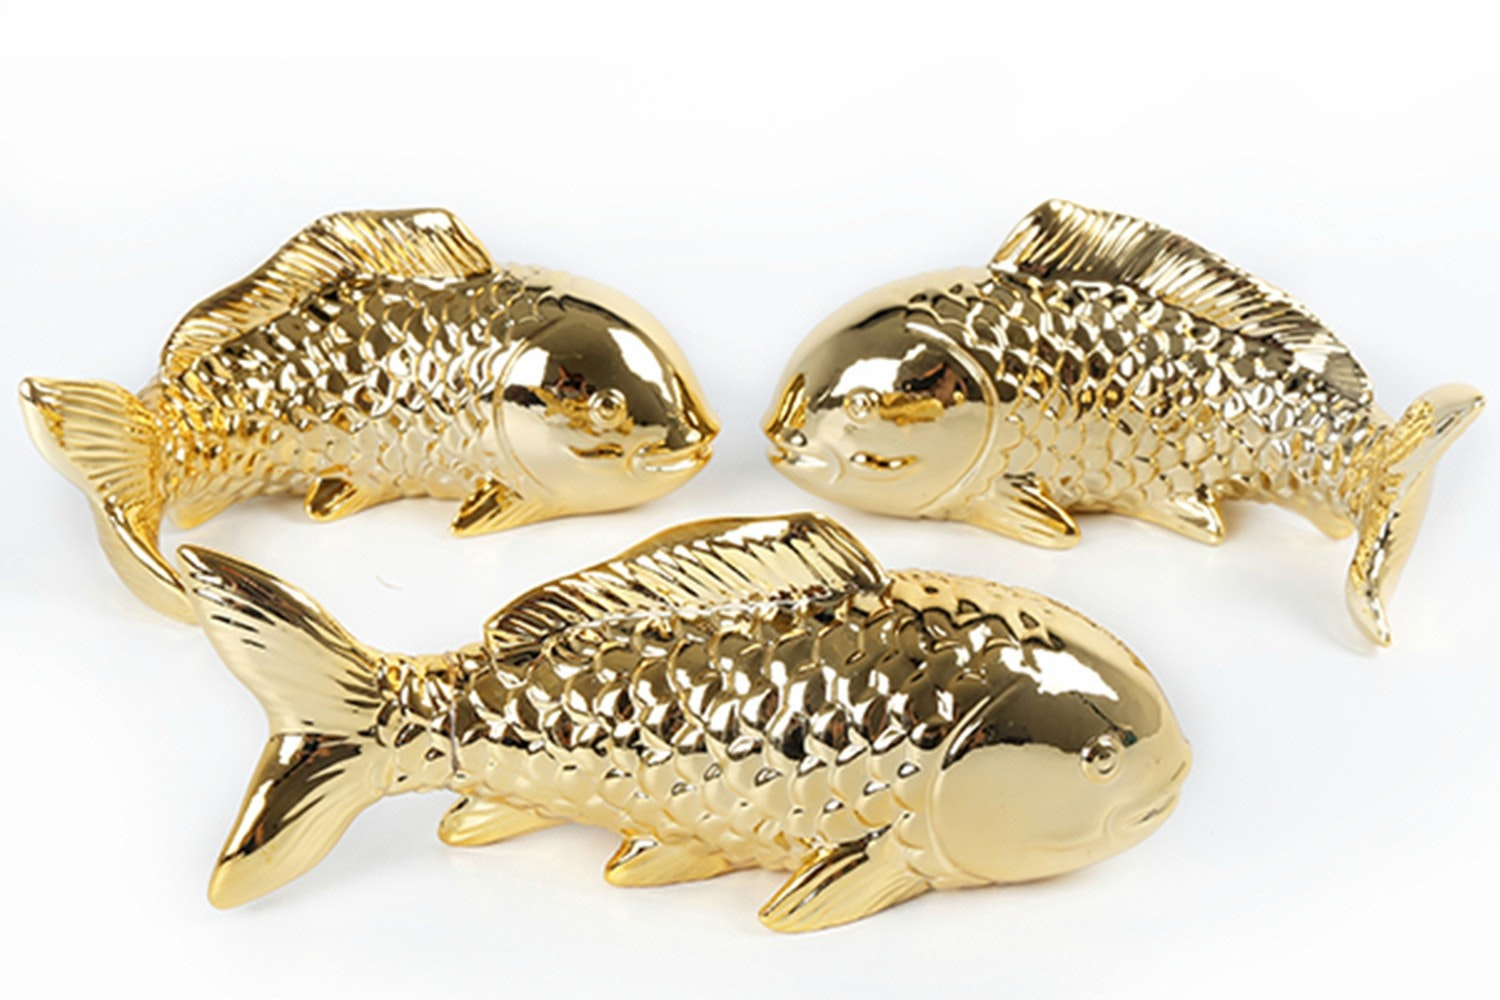 Ceramic Fish Wall Ornaments